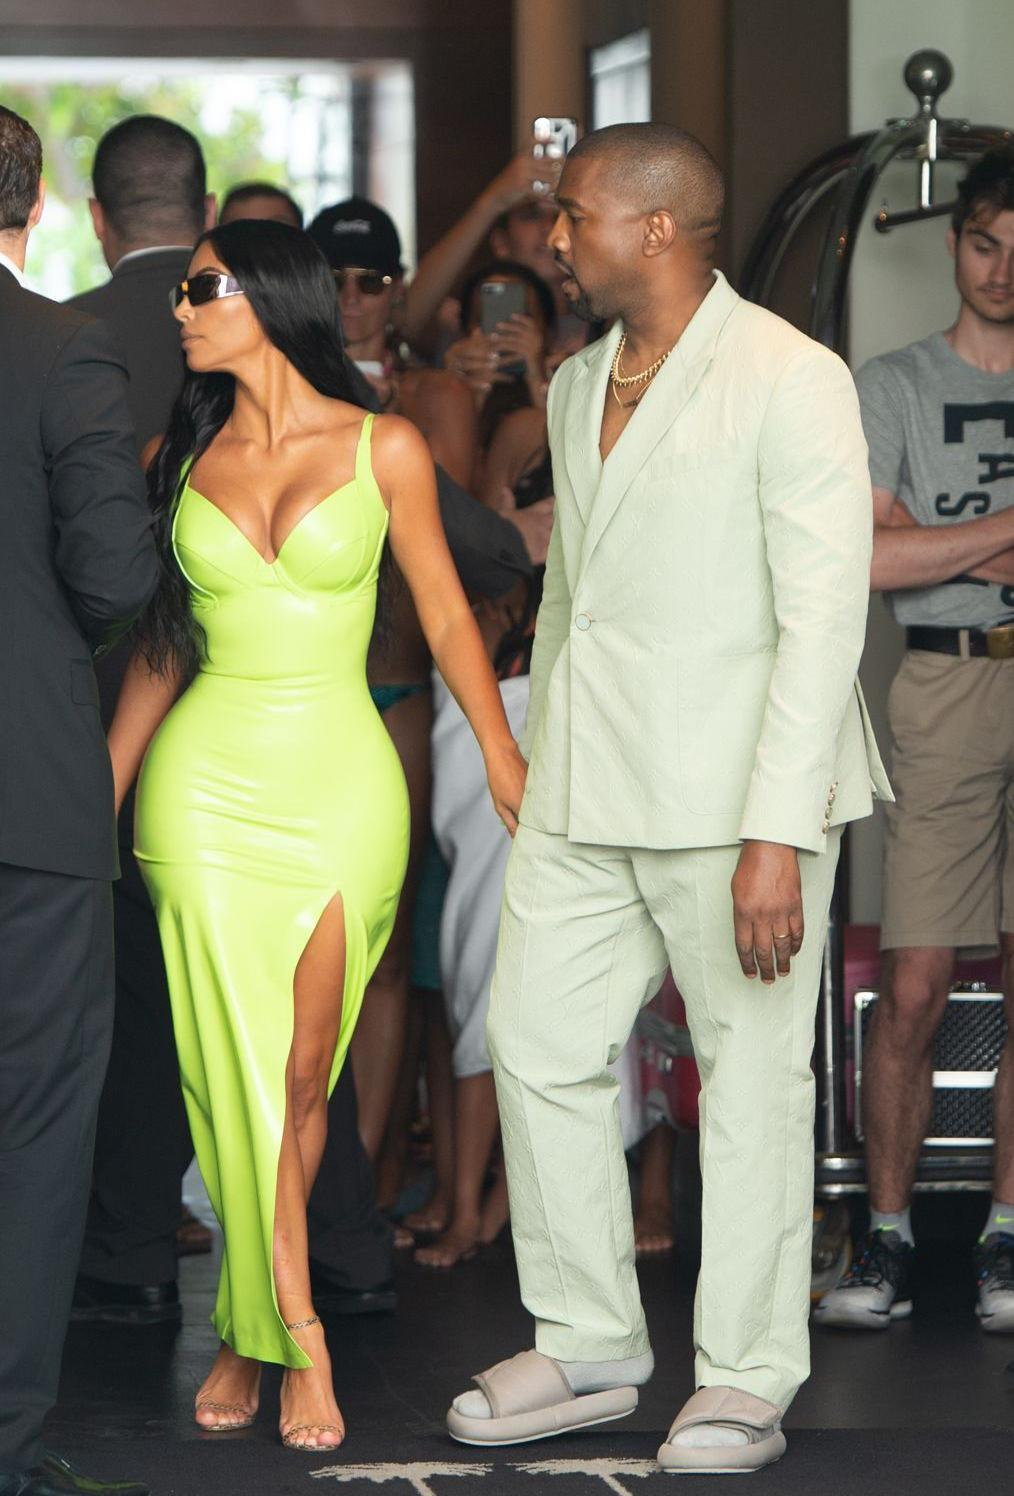 Kim Kardashian and Kanye West at 2 Chainz's wedding to Kesha Ward. West is wearing a Louis Vuitton suit and Yeezy slides. (Photo: South Beach Photo/REX/Shutterstock